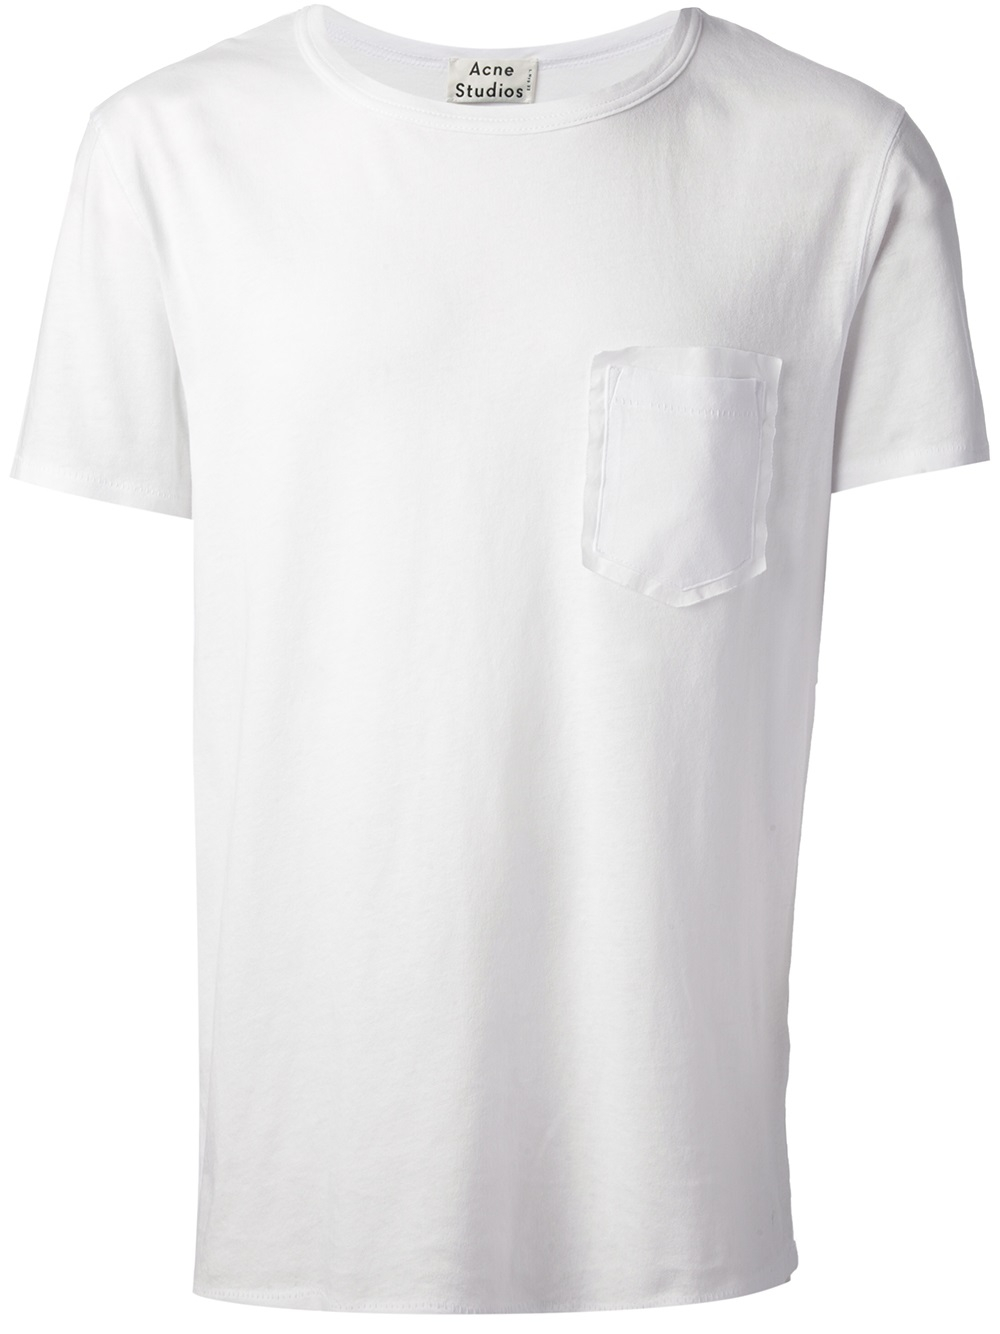 Find great deals on eBay for white t shirt with pocket. Shop with confidence.